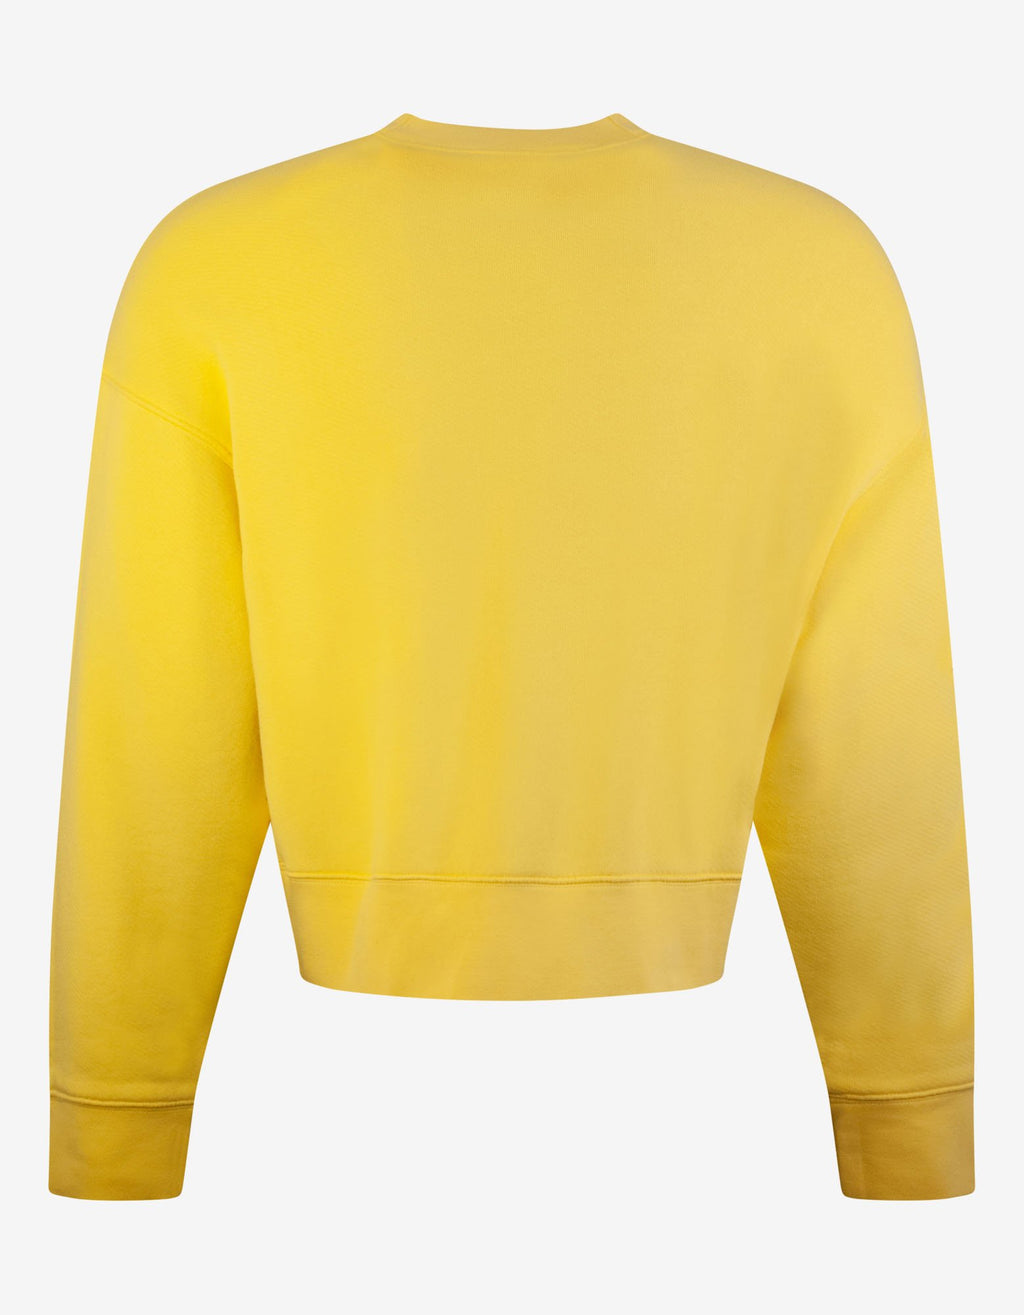 Yellow World In Hands Oversized Sweatshirt -